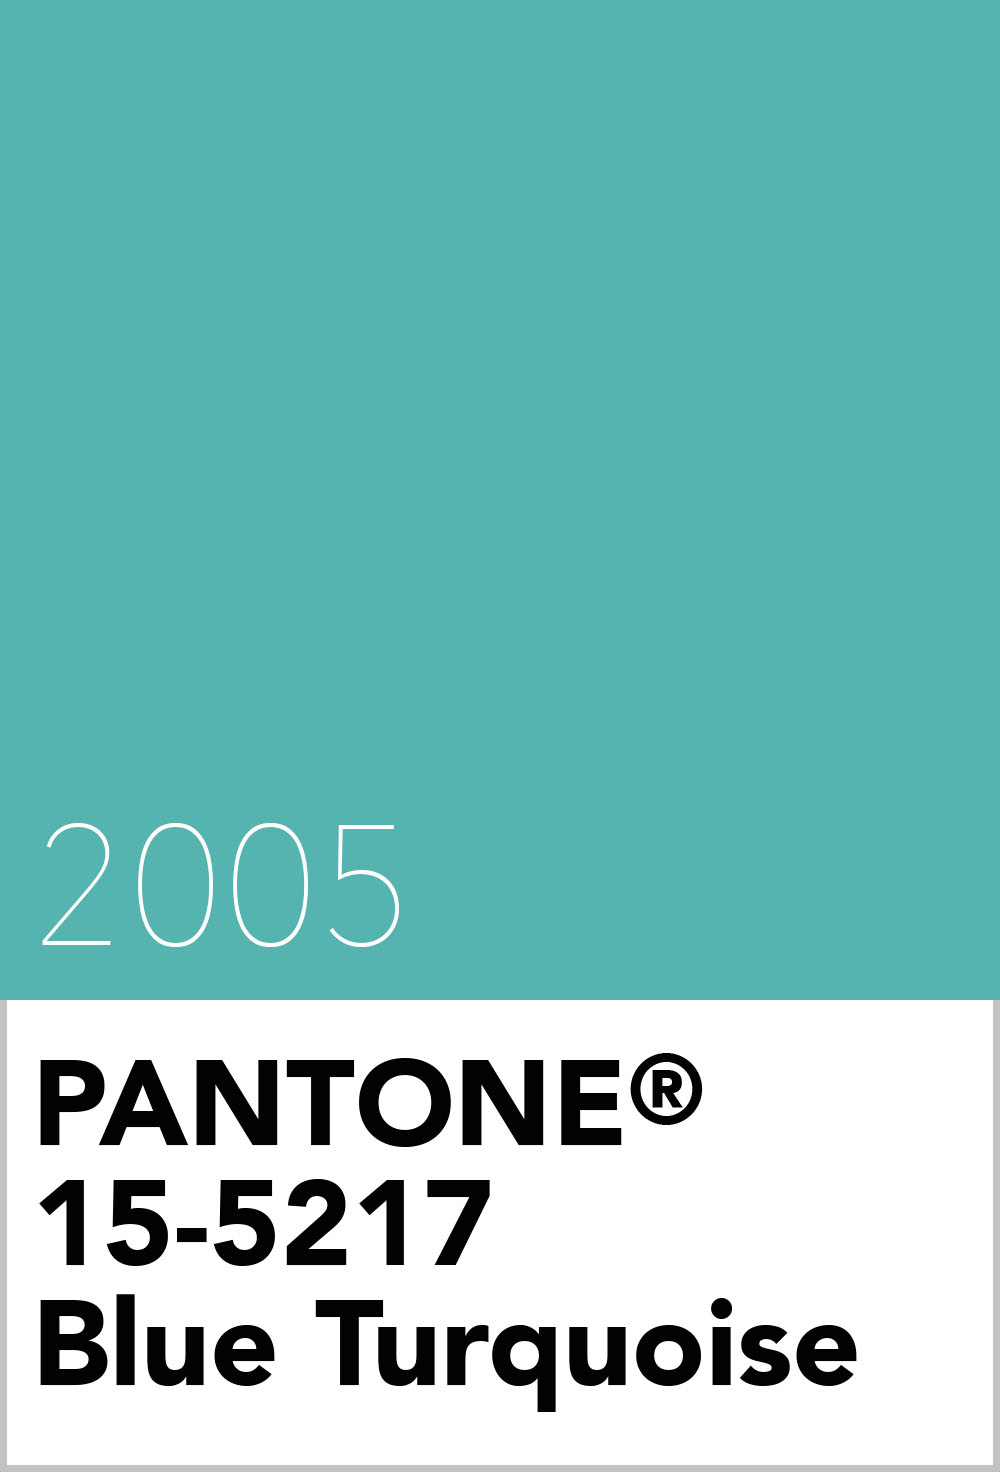 pantone colour of the year 2005